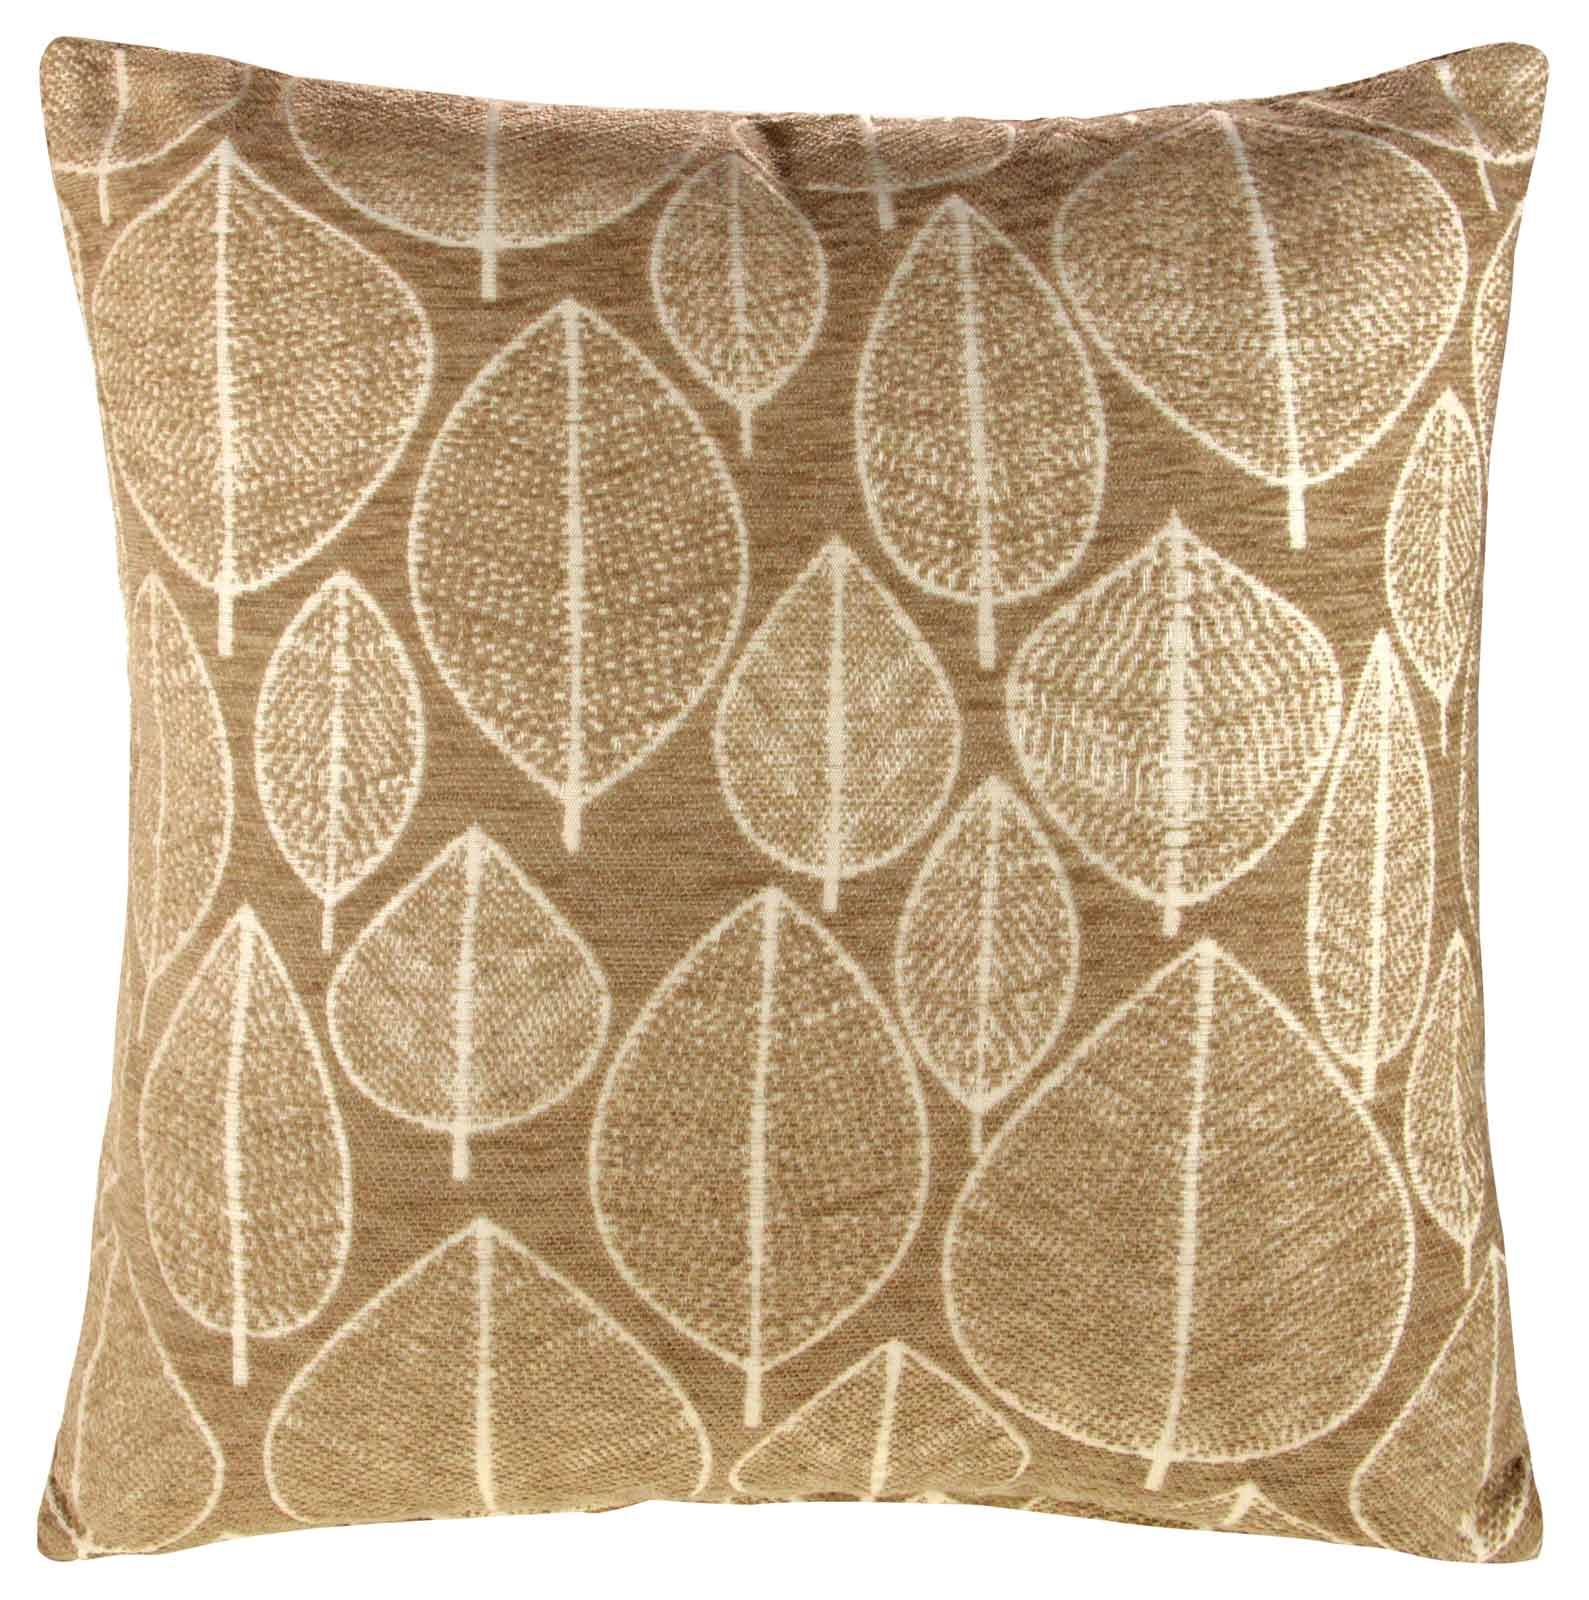 Chenille Throw Pillow Covers : KIRKTON GEOMETRIC LEAF CHENILLE CUSHION COVER THROW PILLOW CASE 43cm x 43cm